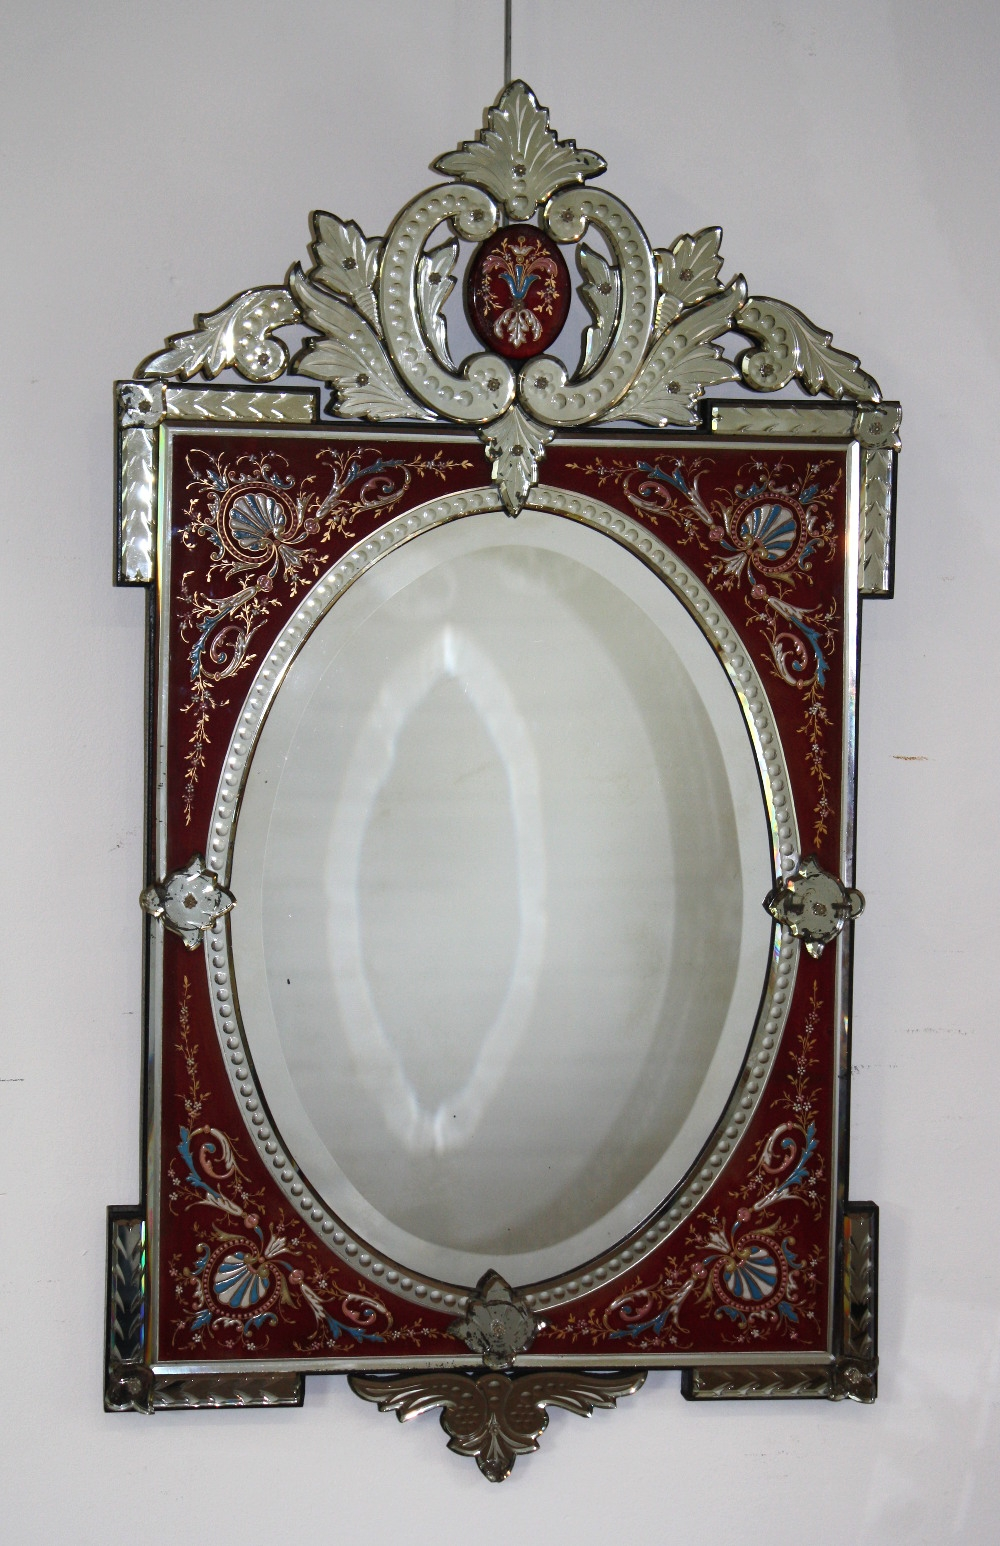 Rare Red Framed Antique Venetian Mirror Decorative Collective Within Antique Venetian Mirrors For Sale (Image 14 of 15)